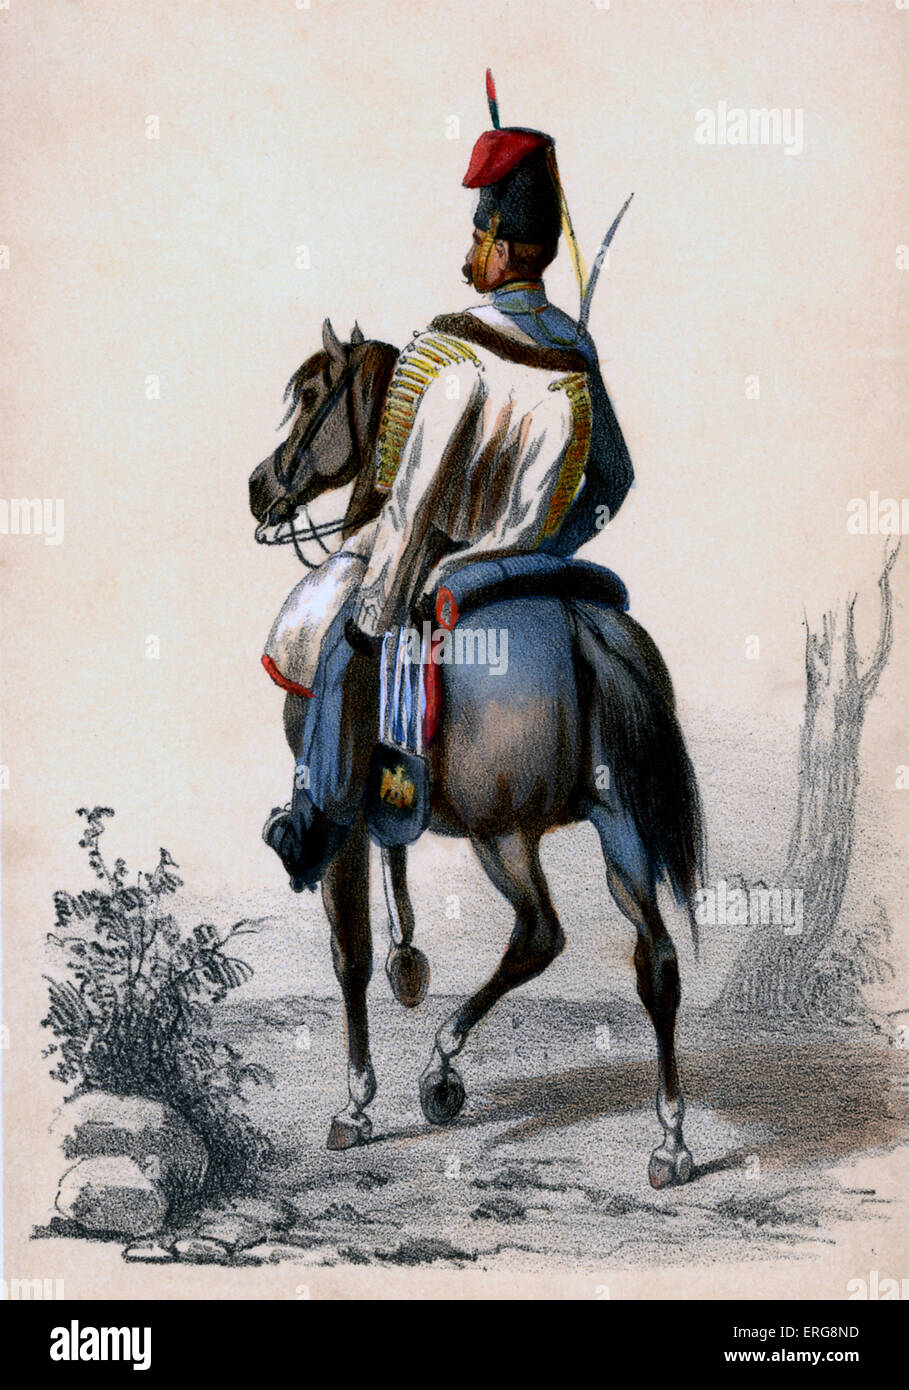 Hussard: a member of 19th century light cavalry in the French Army - here on horseback. Hussars belonged to elite Stock Photo